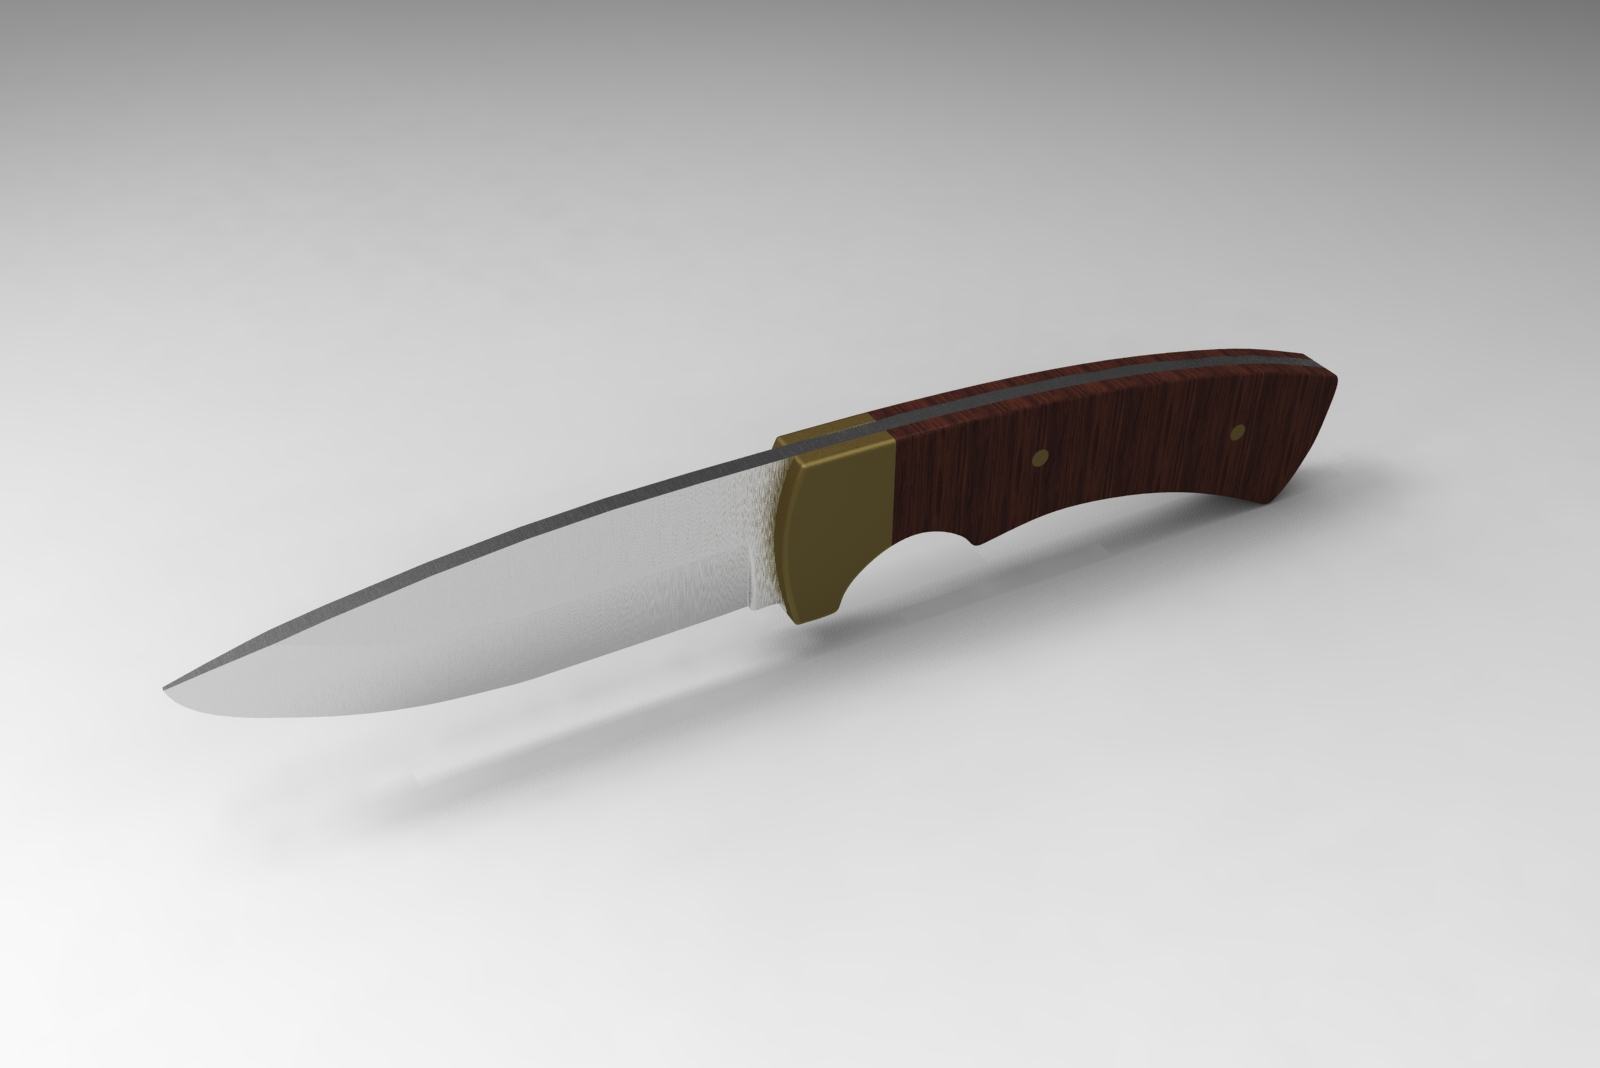 Picture of Design the Knife (CAD - Optional)